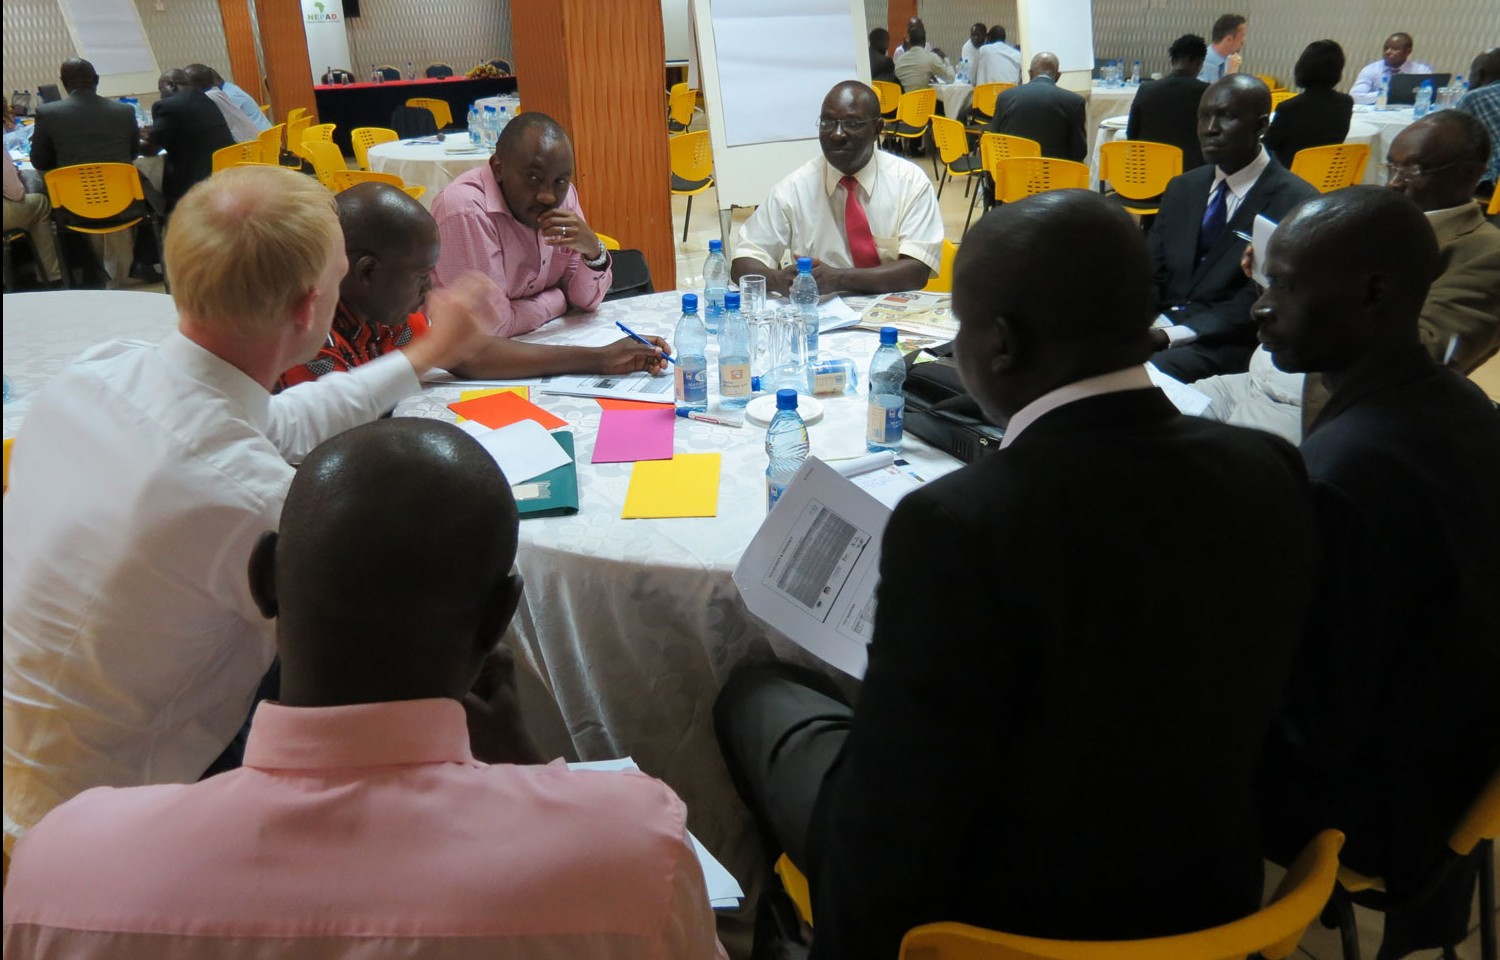 Participants during the working group session for risk prioritization